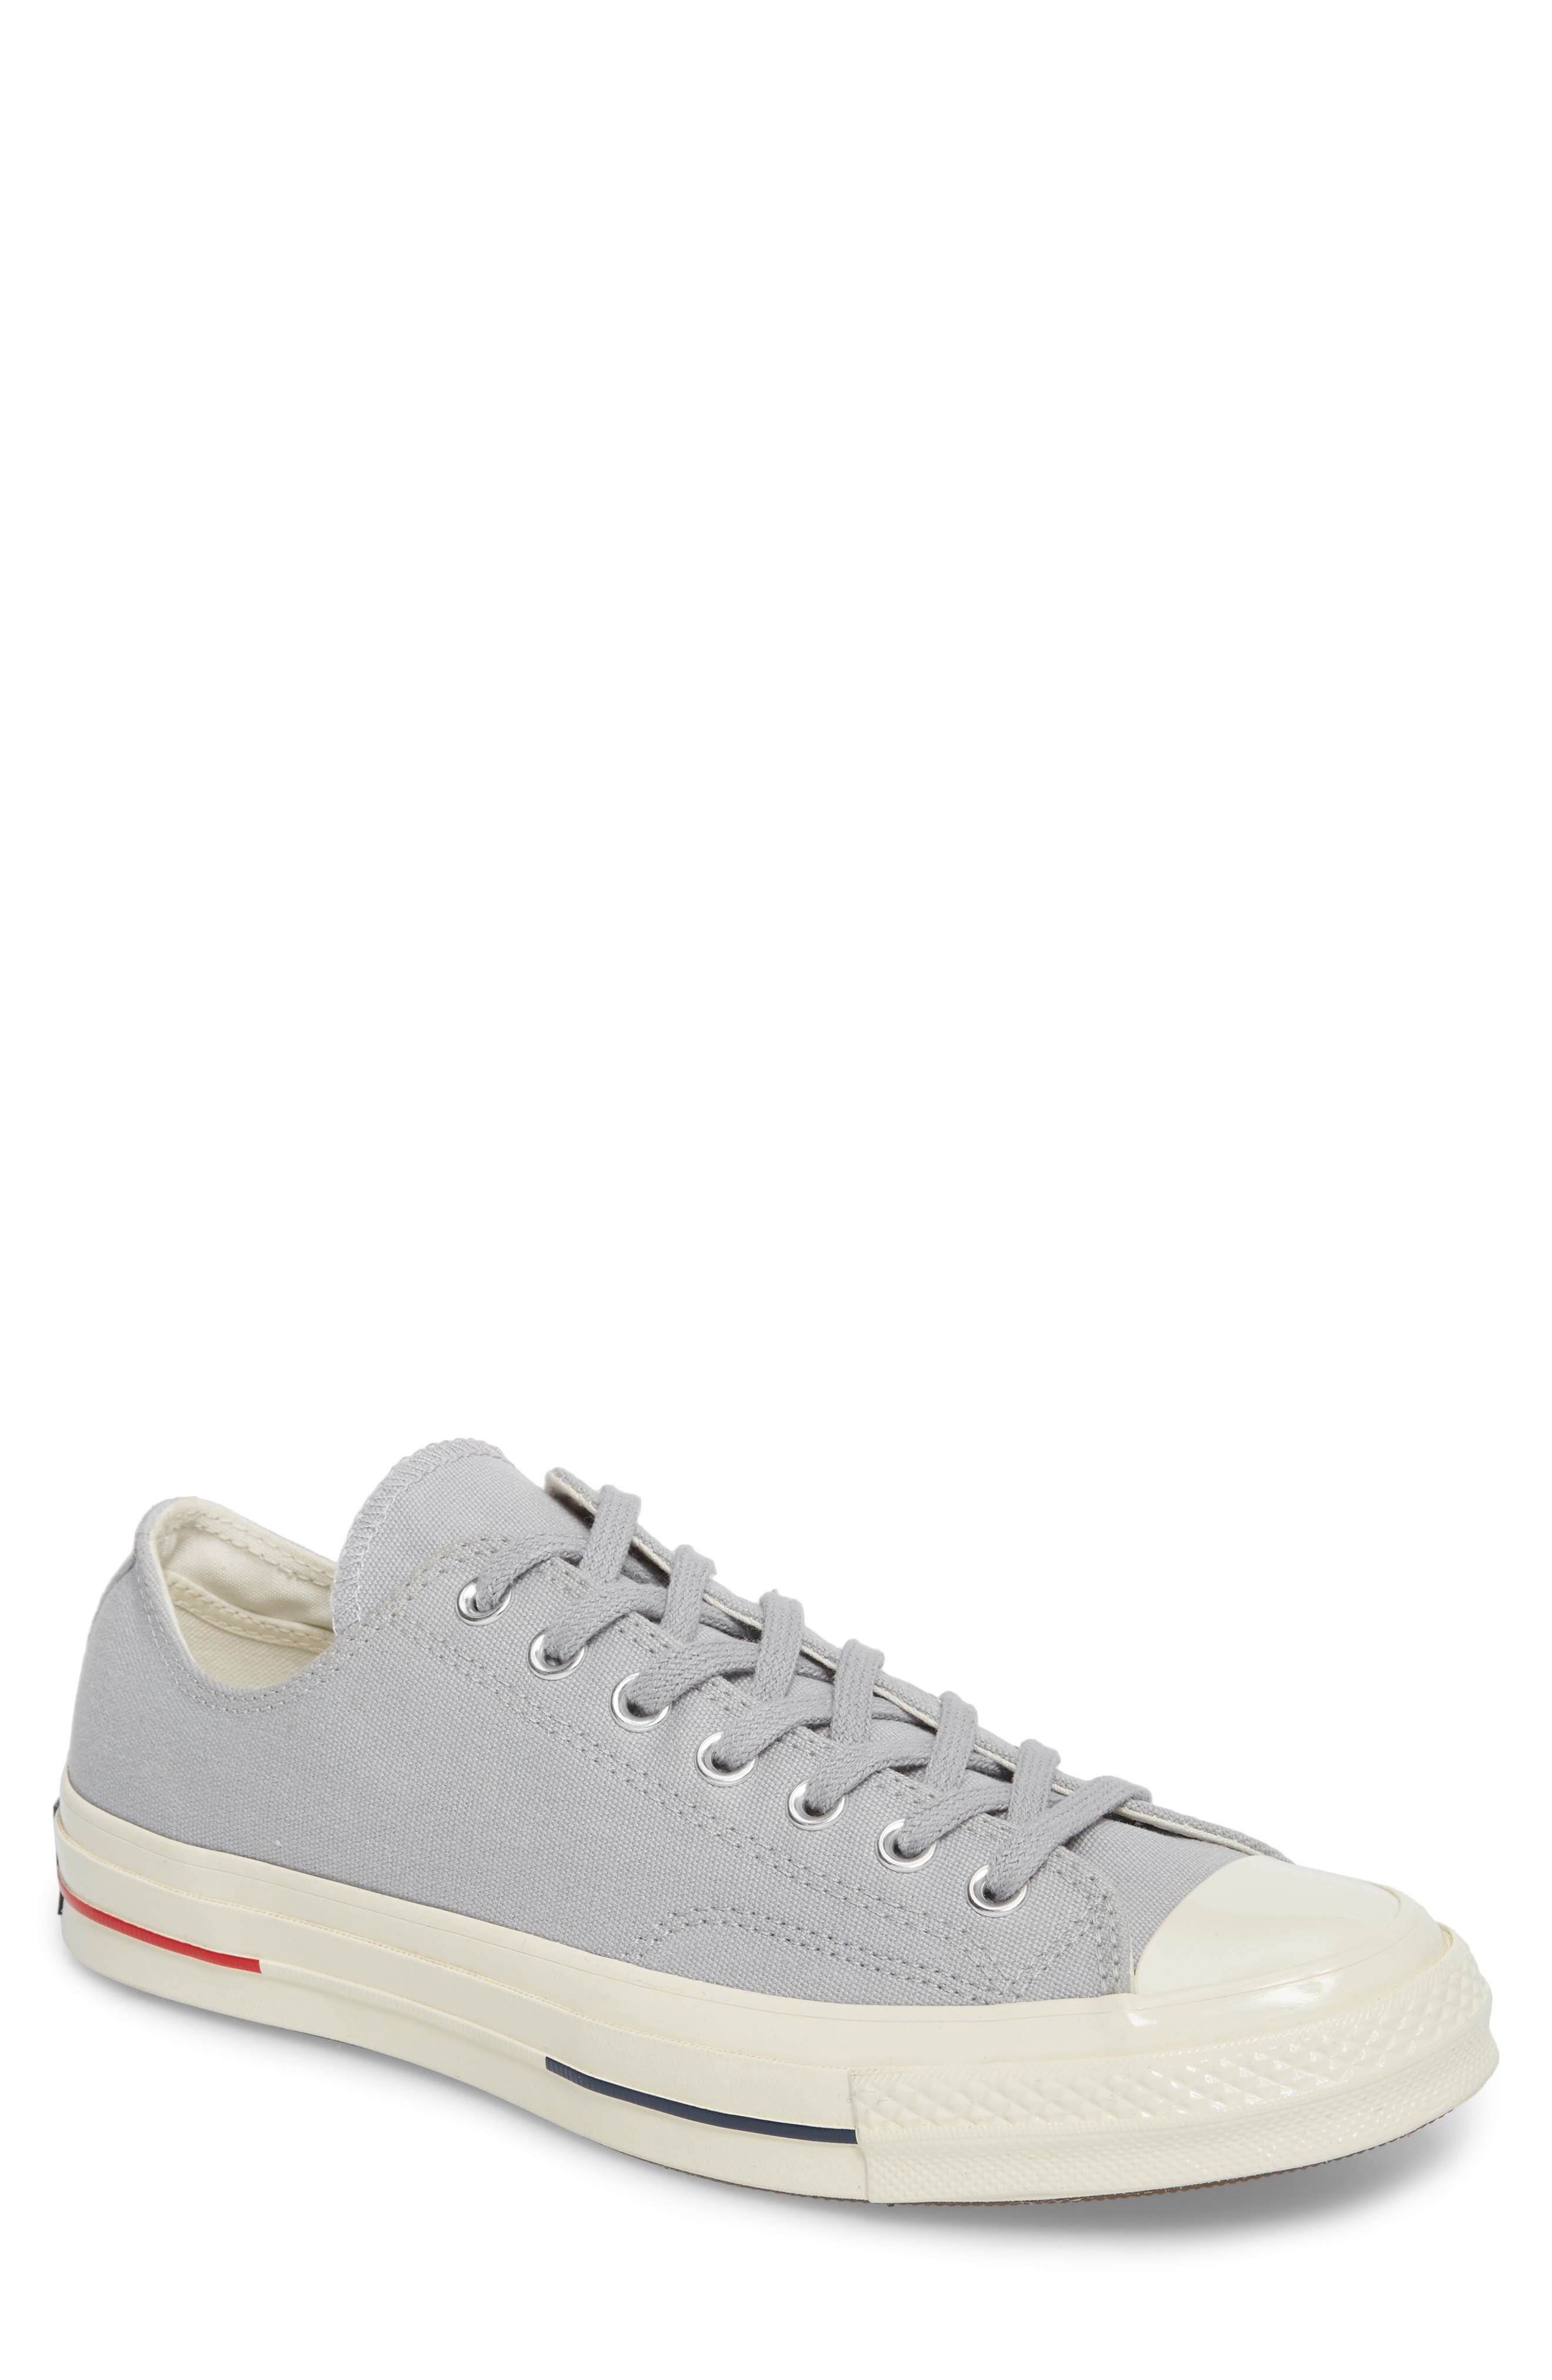 CONVERSE,                             Chuck Taylor<sup>®</sup> All Star<sup>®</sup> 70 Heritage Low Top Sneaker,                             Main thumbnail 1, color,                             097